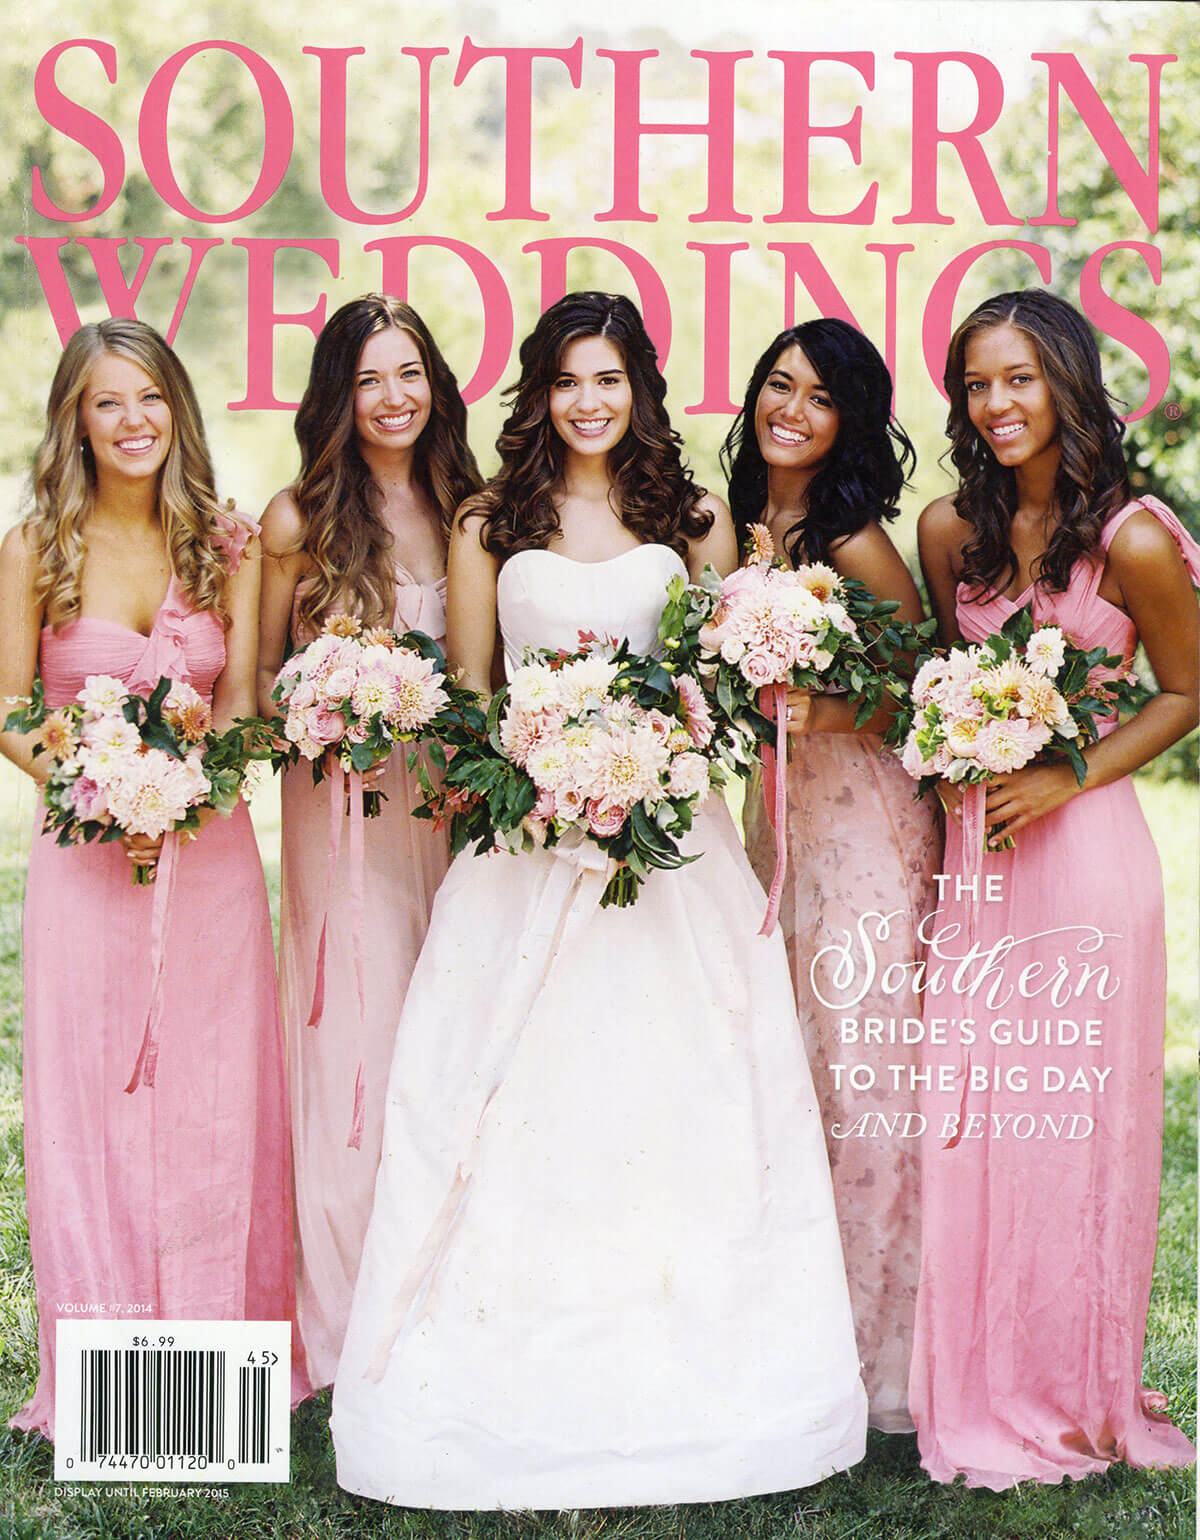 Souther Weddings Magazine - Featuring Isn't She Lovely